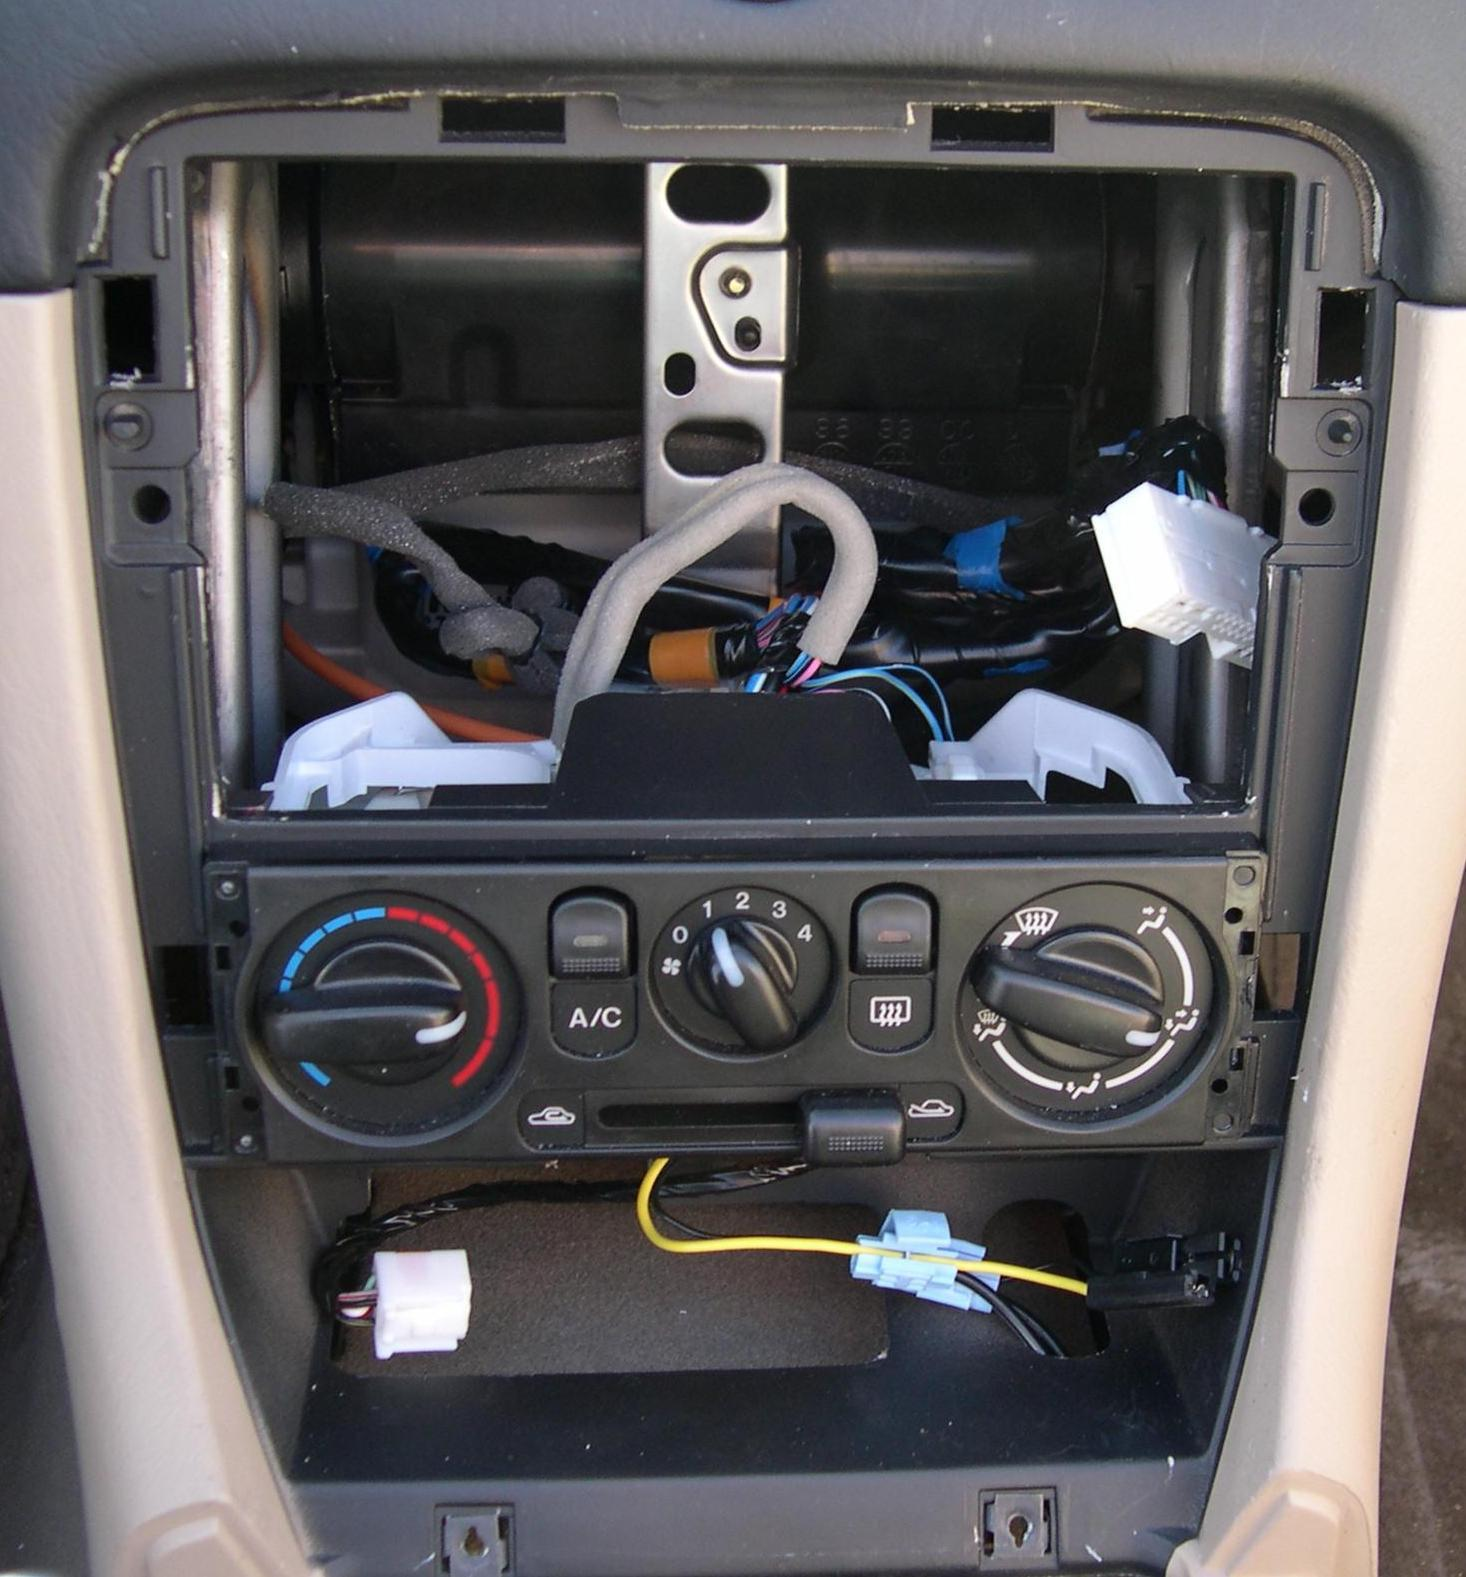 2001 Radio Out the mazda nb oem audio system faq  at readyjetset.co